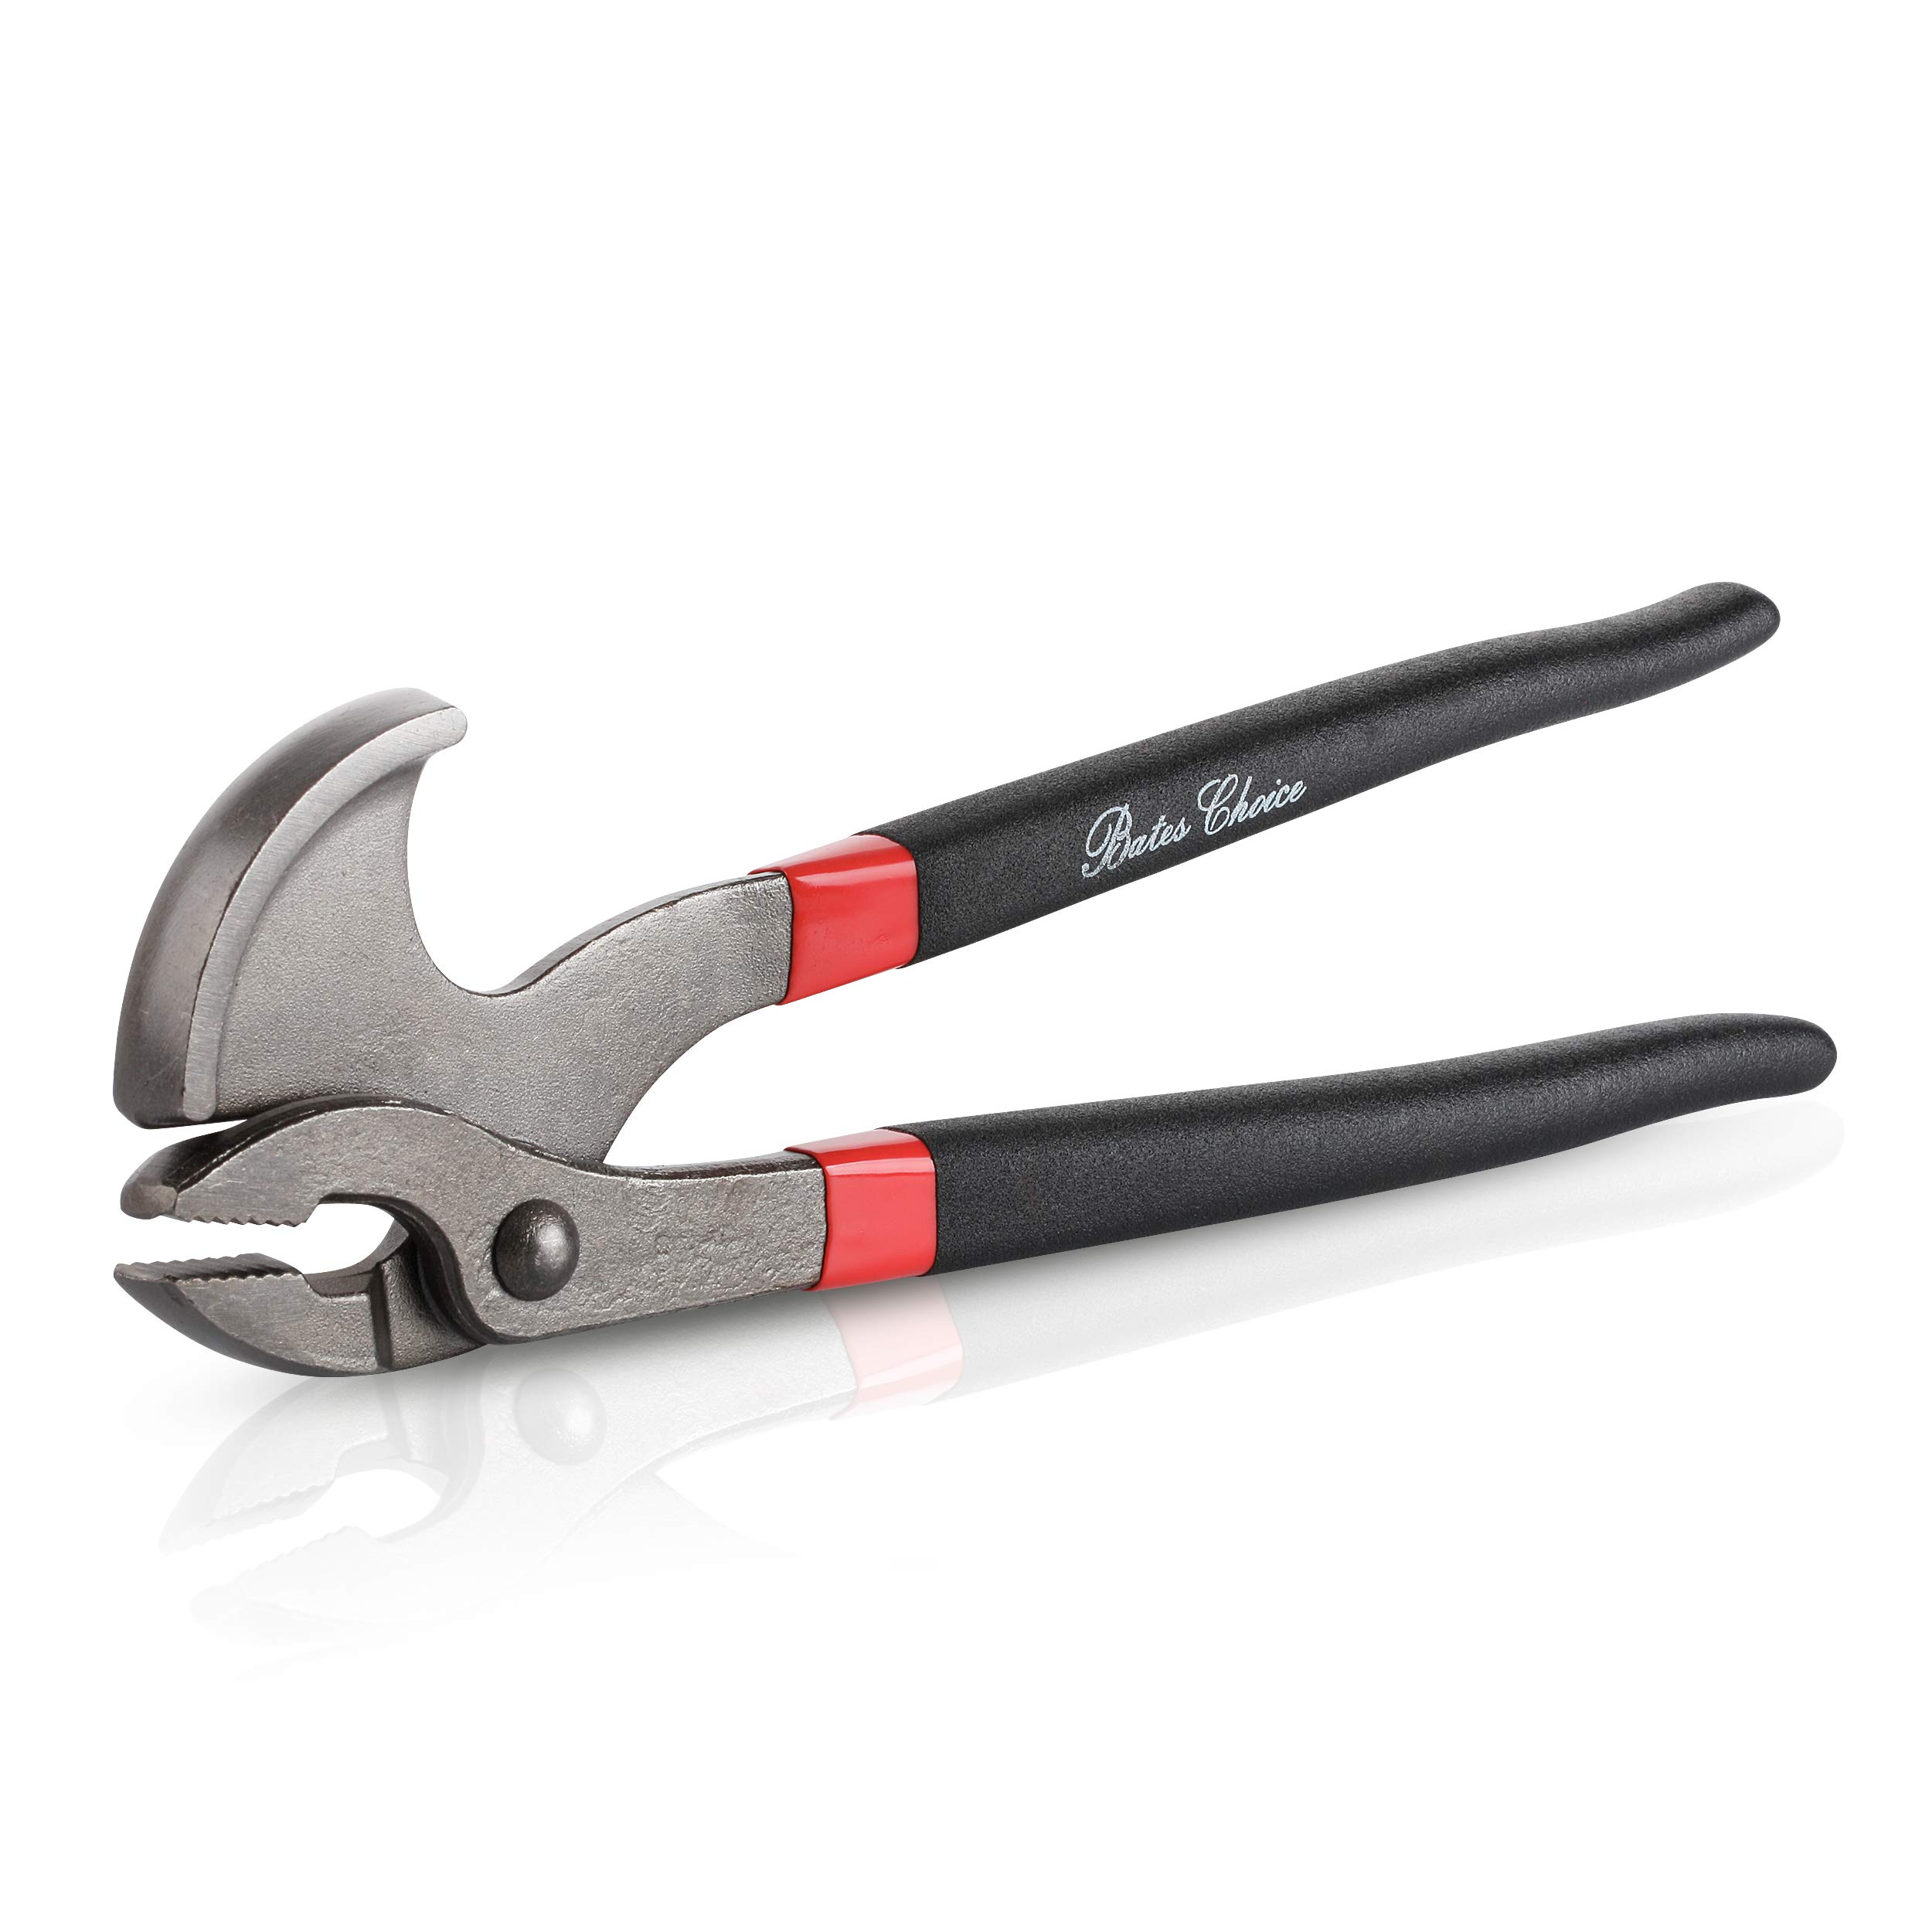 Bates- Nail Puller, Pliers, Nail Remover Tool, Multi Tool, Hand Tools, Staple Puller, Carpenter Tools, Staple Remover, Nail Puller Tool, Trim Puller, Nail Remover, Nail Pliers, Cats Paw Nail Puller